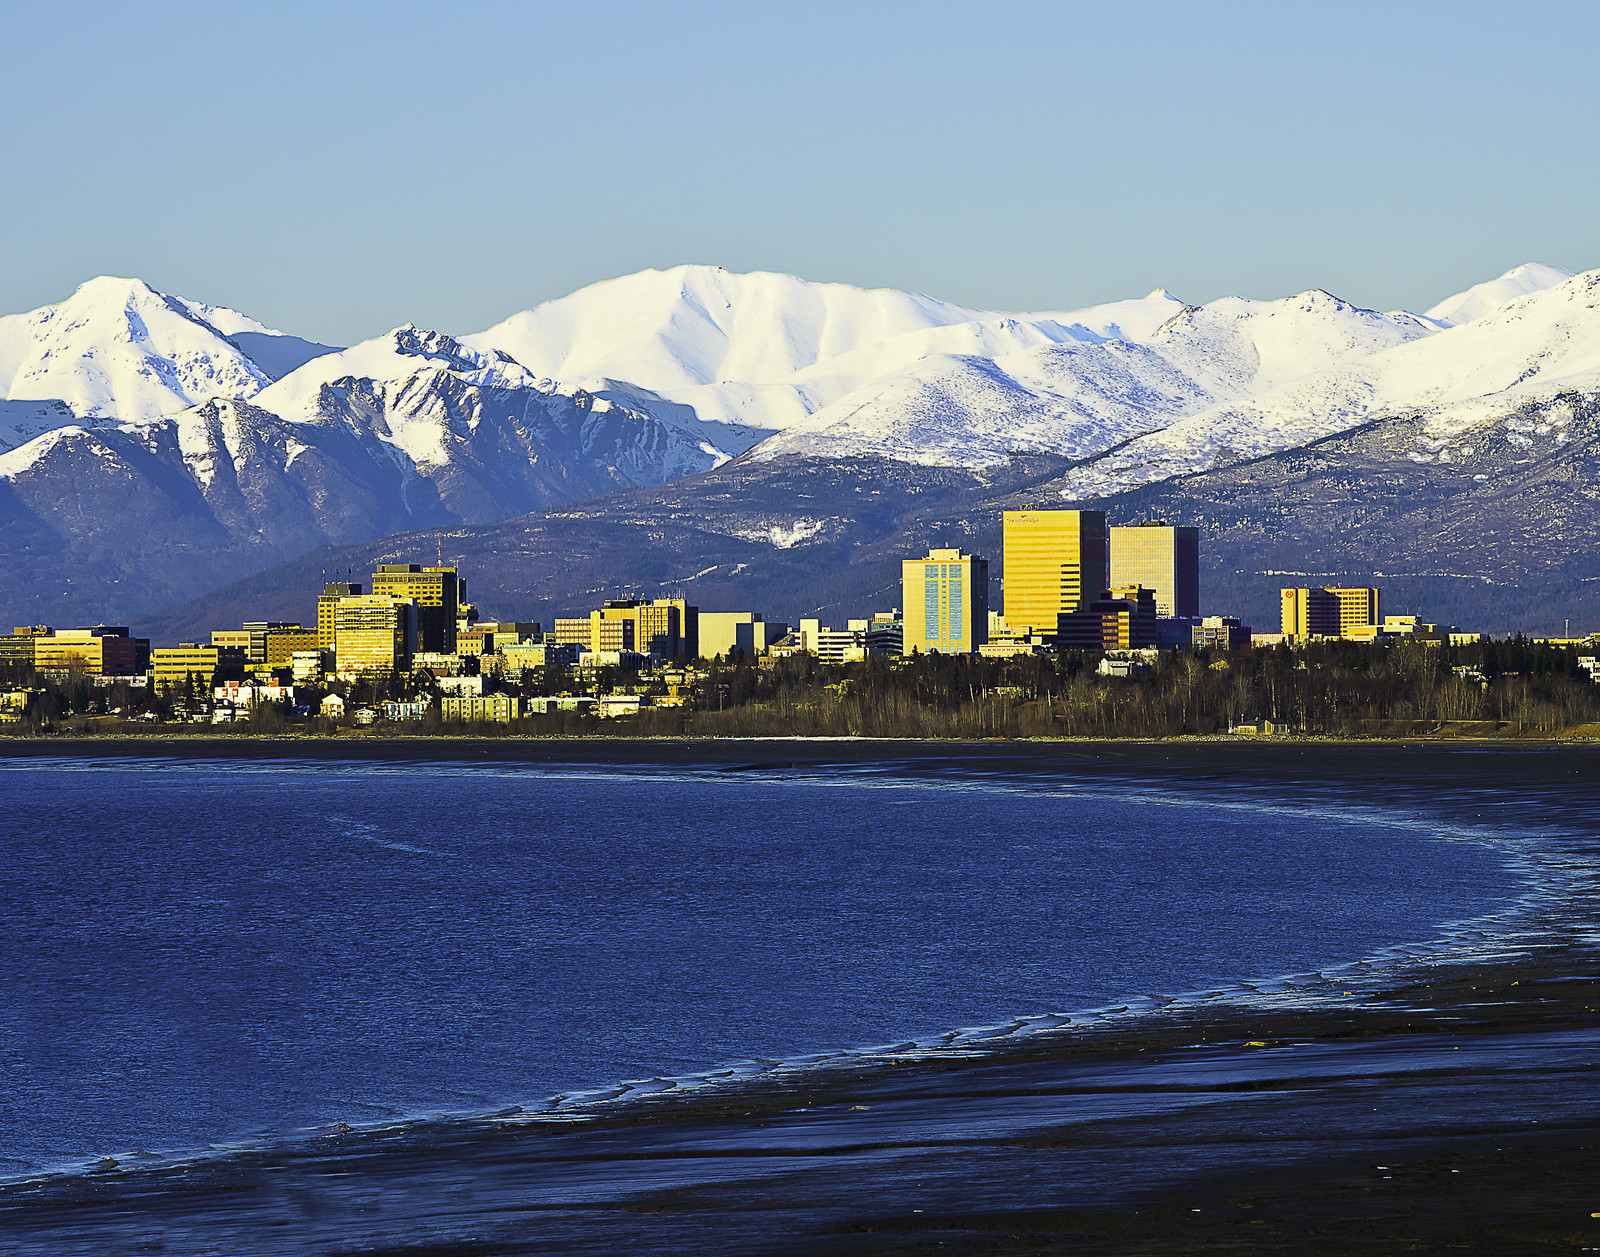 Anchorage skyline with mountains in the background and blue skies, photo taken from the other side of the bay